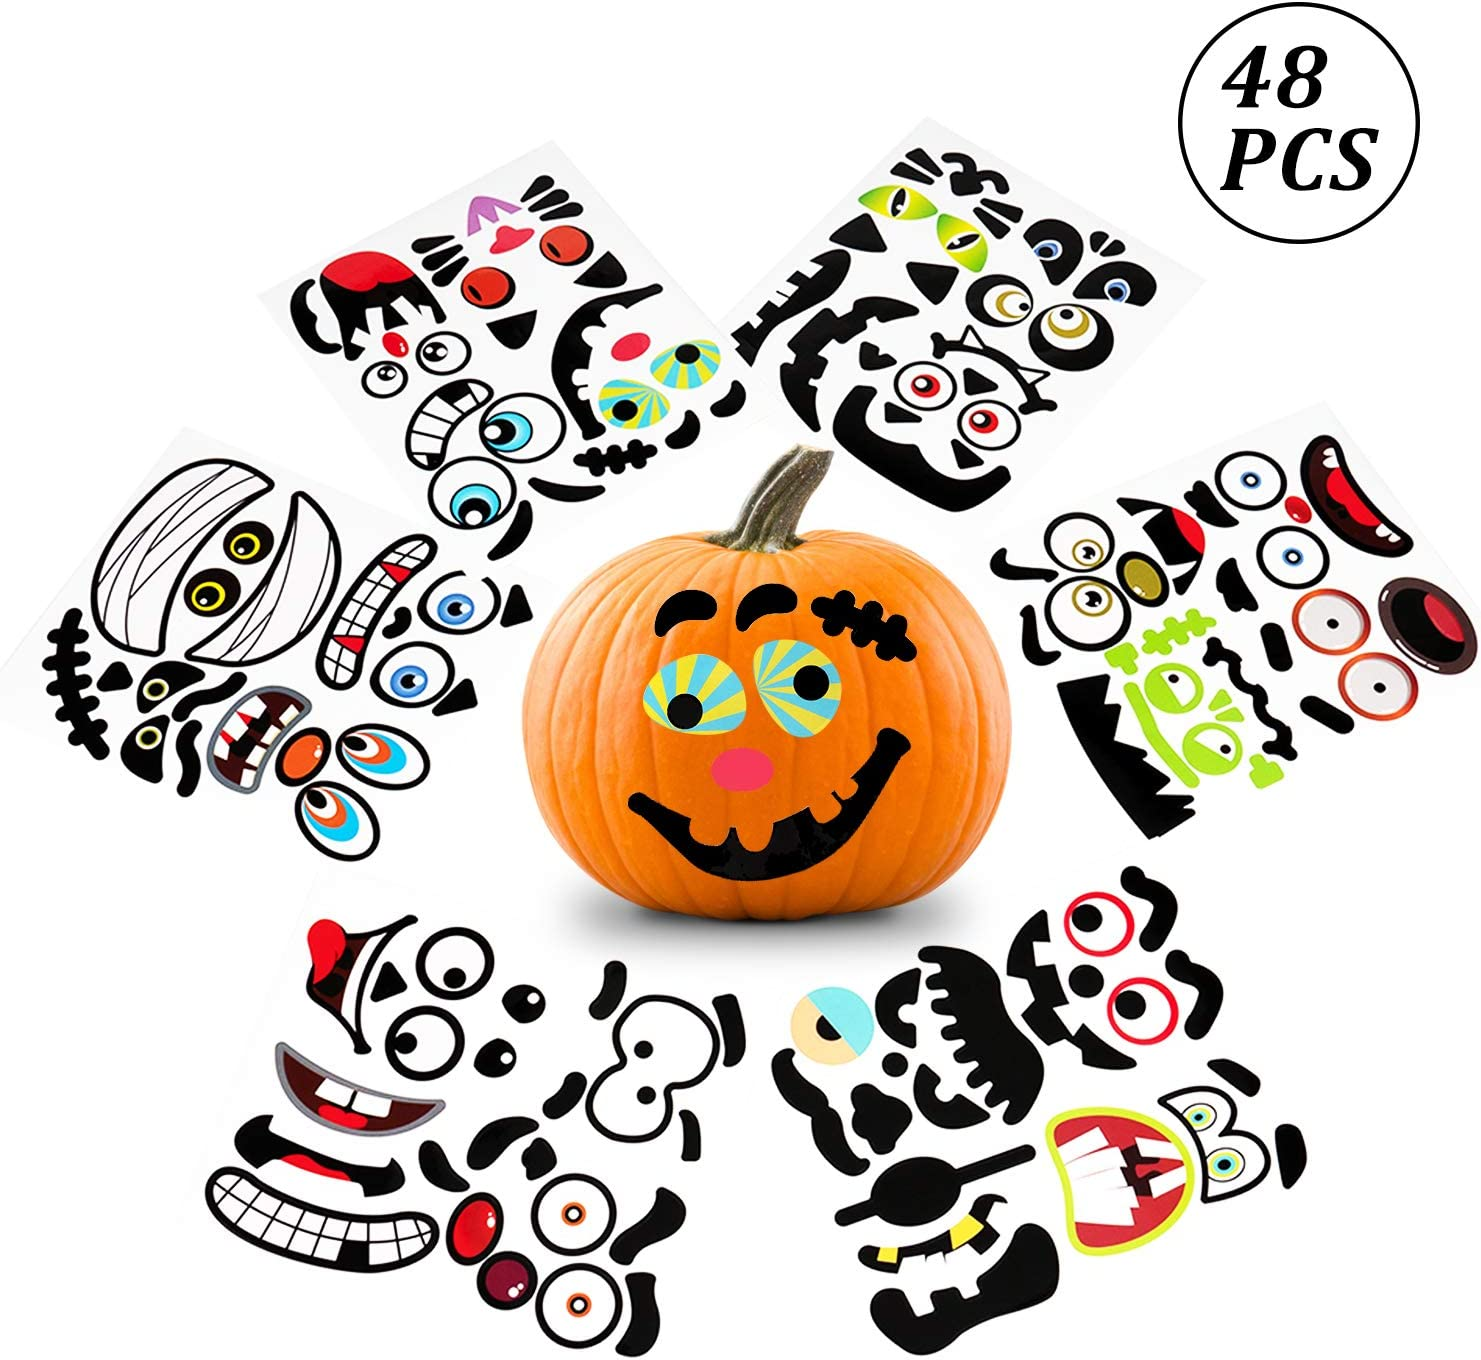 Cute Pumpkin Decorating Stickers for Halloween Party Favors 48Ct DIY Jack O Lantern Stickers Pumpkin Decorating Kits for Kids CDLong Halloween Stickers for Pumpkins